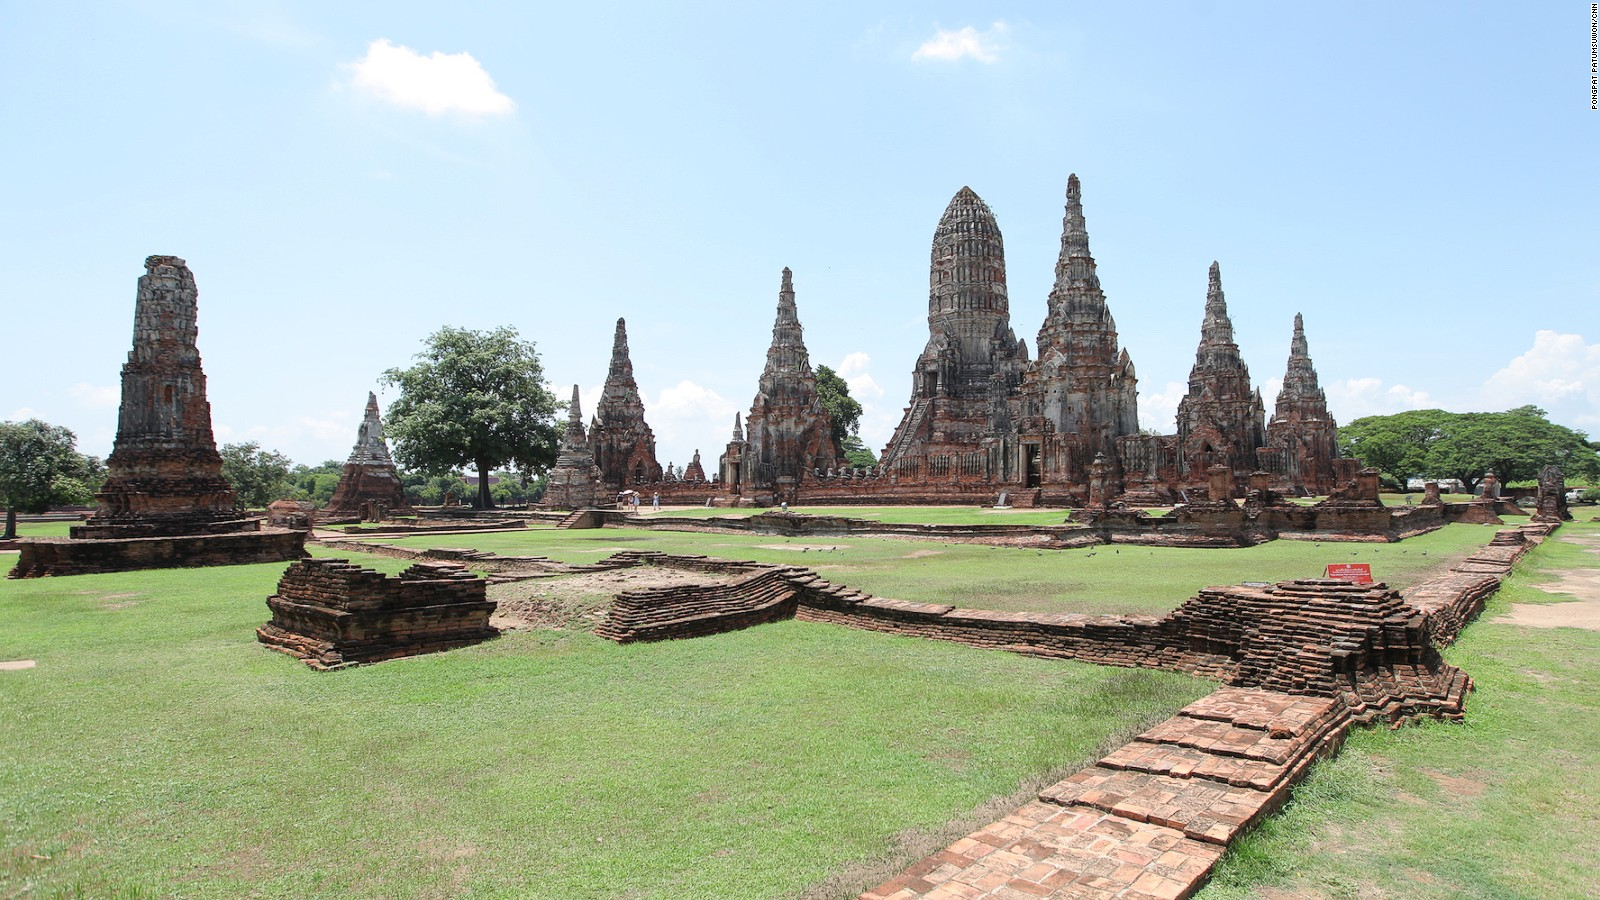 Trip to Ayutthaya recalls glory days of old Siam | CNN Travel